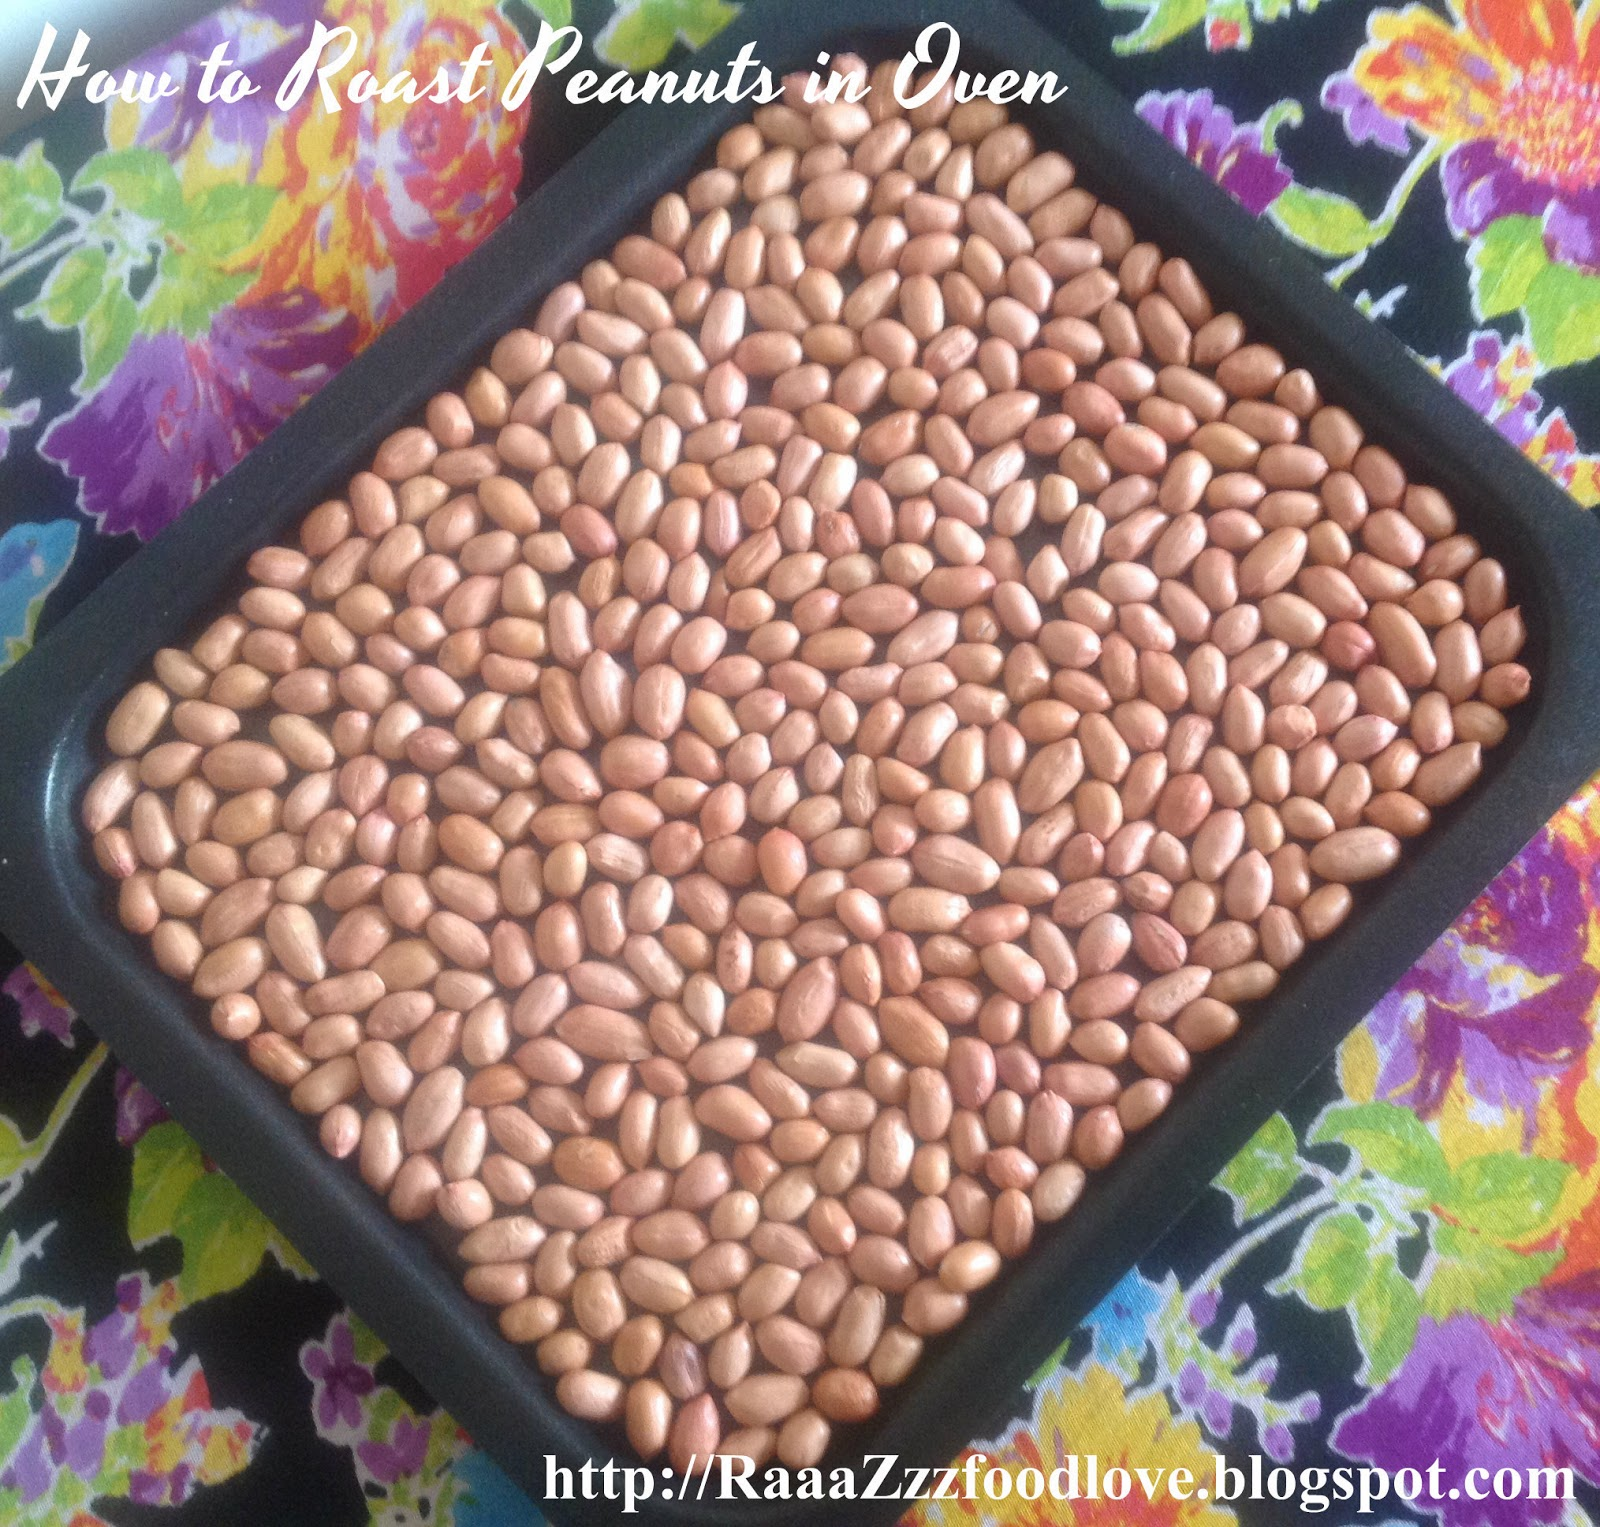 The Recipes Of India How To Roast Peanuts In Oven Kitchen Basics